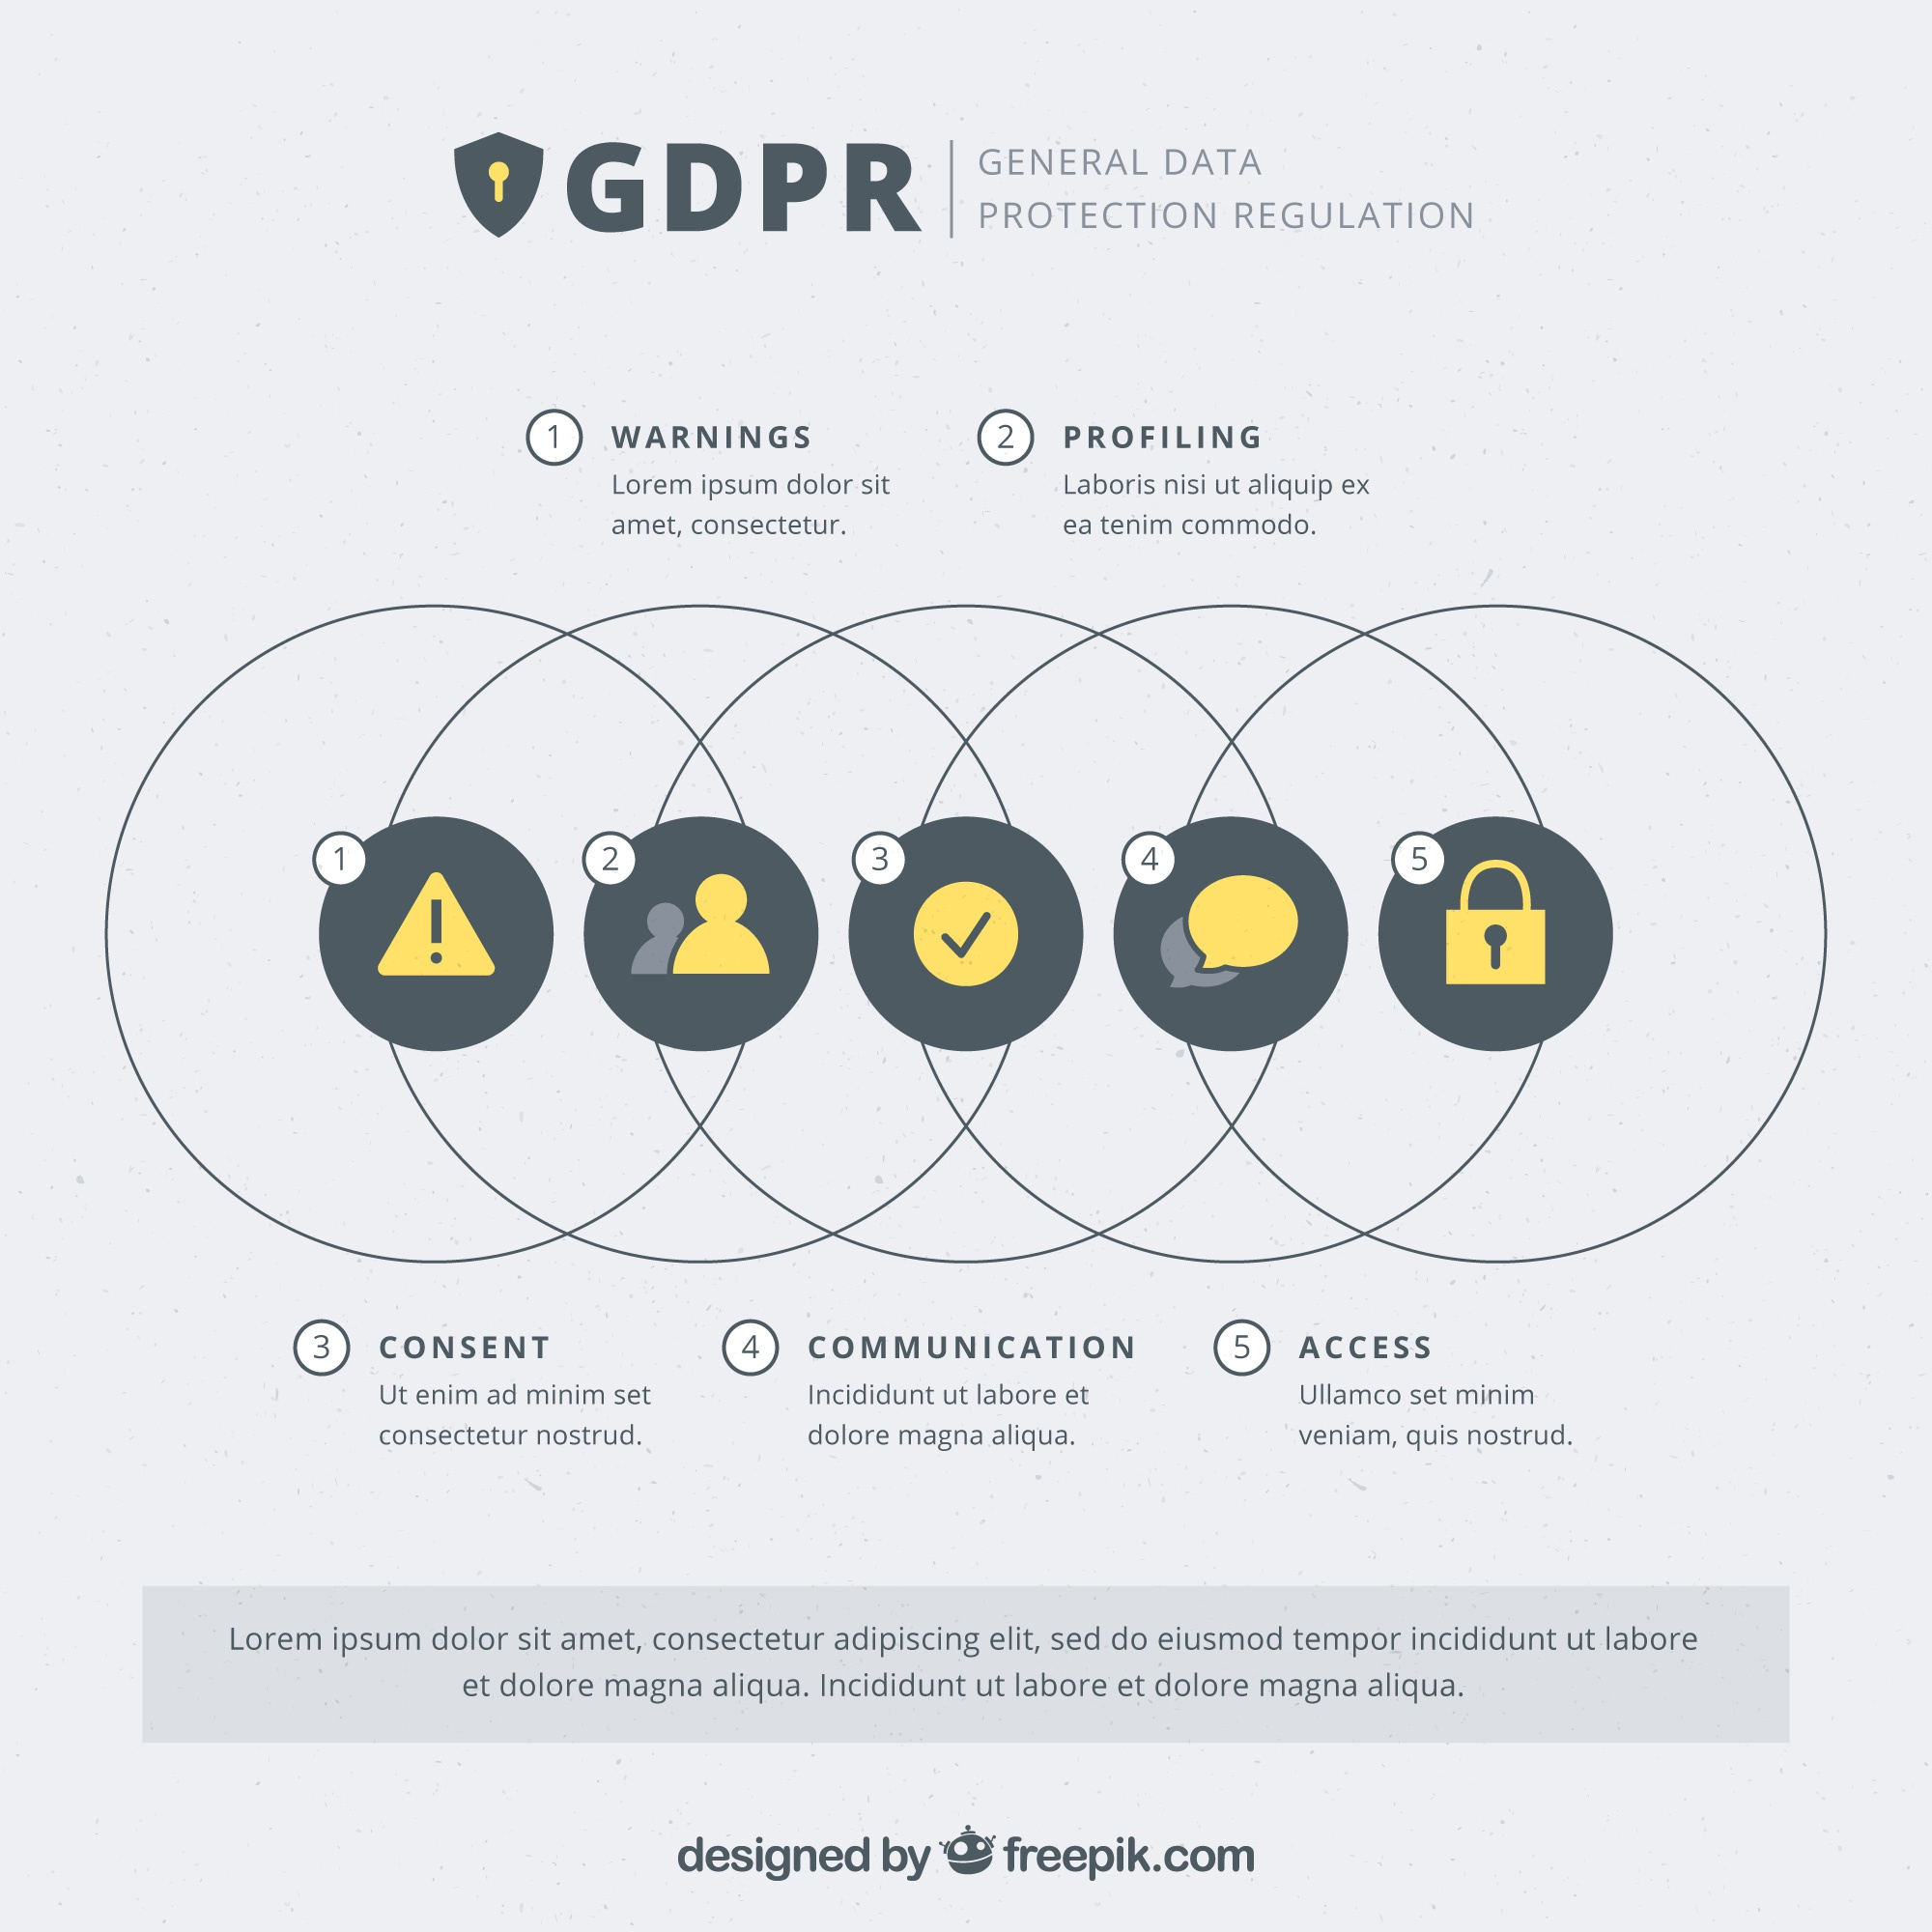 New gdpr concept with infographic design